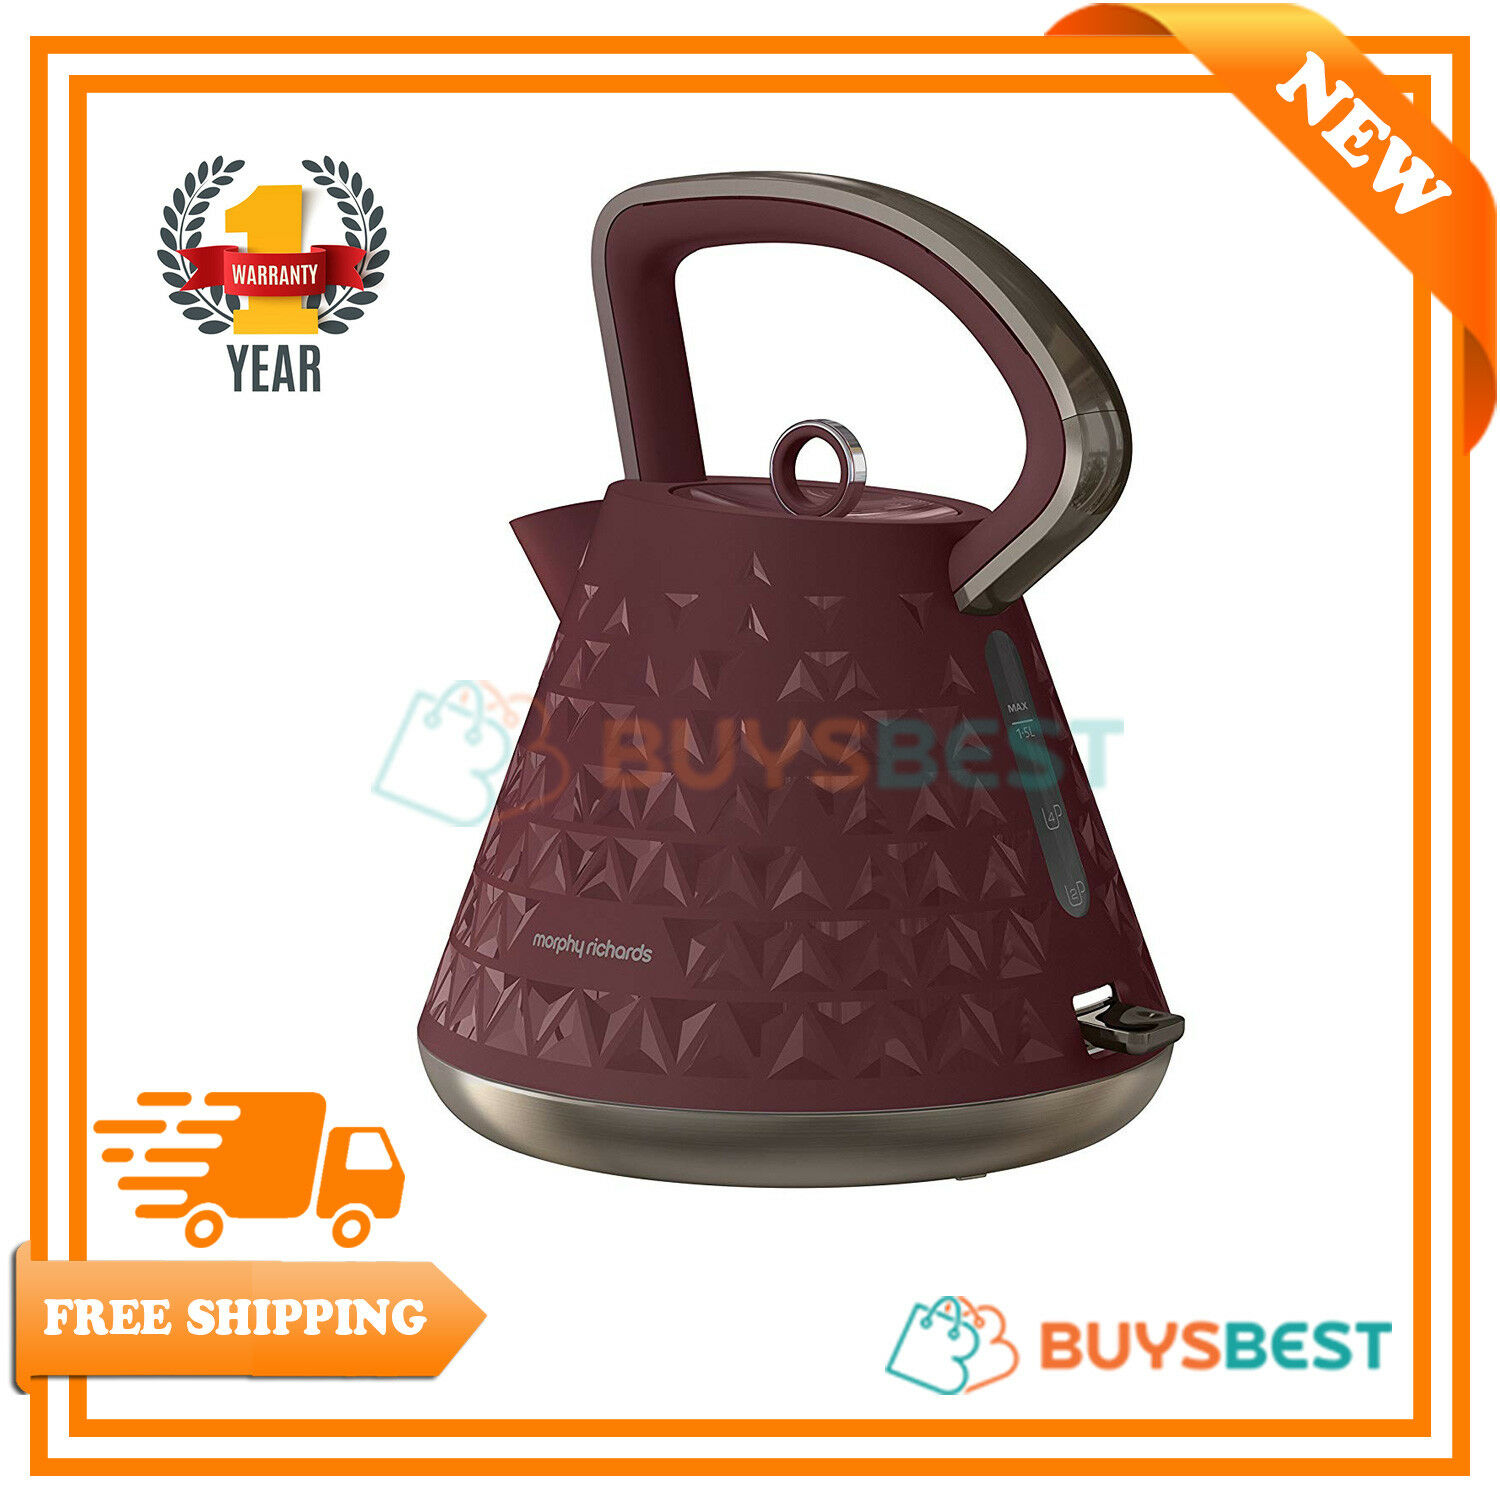 Morphy Richards 1.5L Pyramid Kettle Prism Merlot Electric Kettle 3KW - 108103